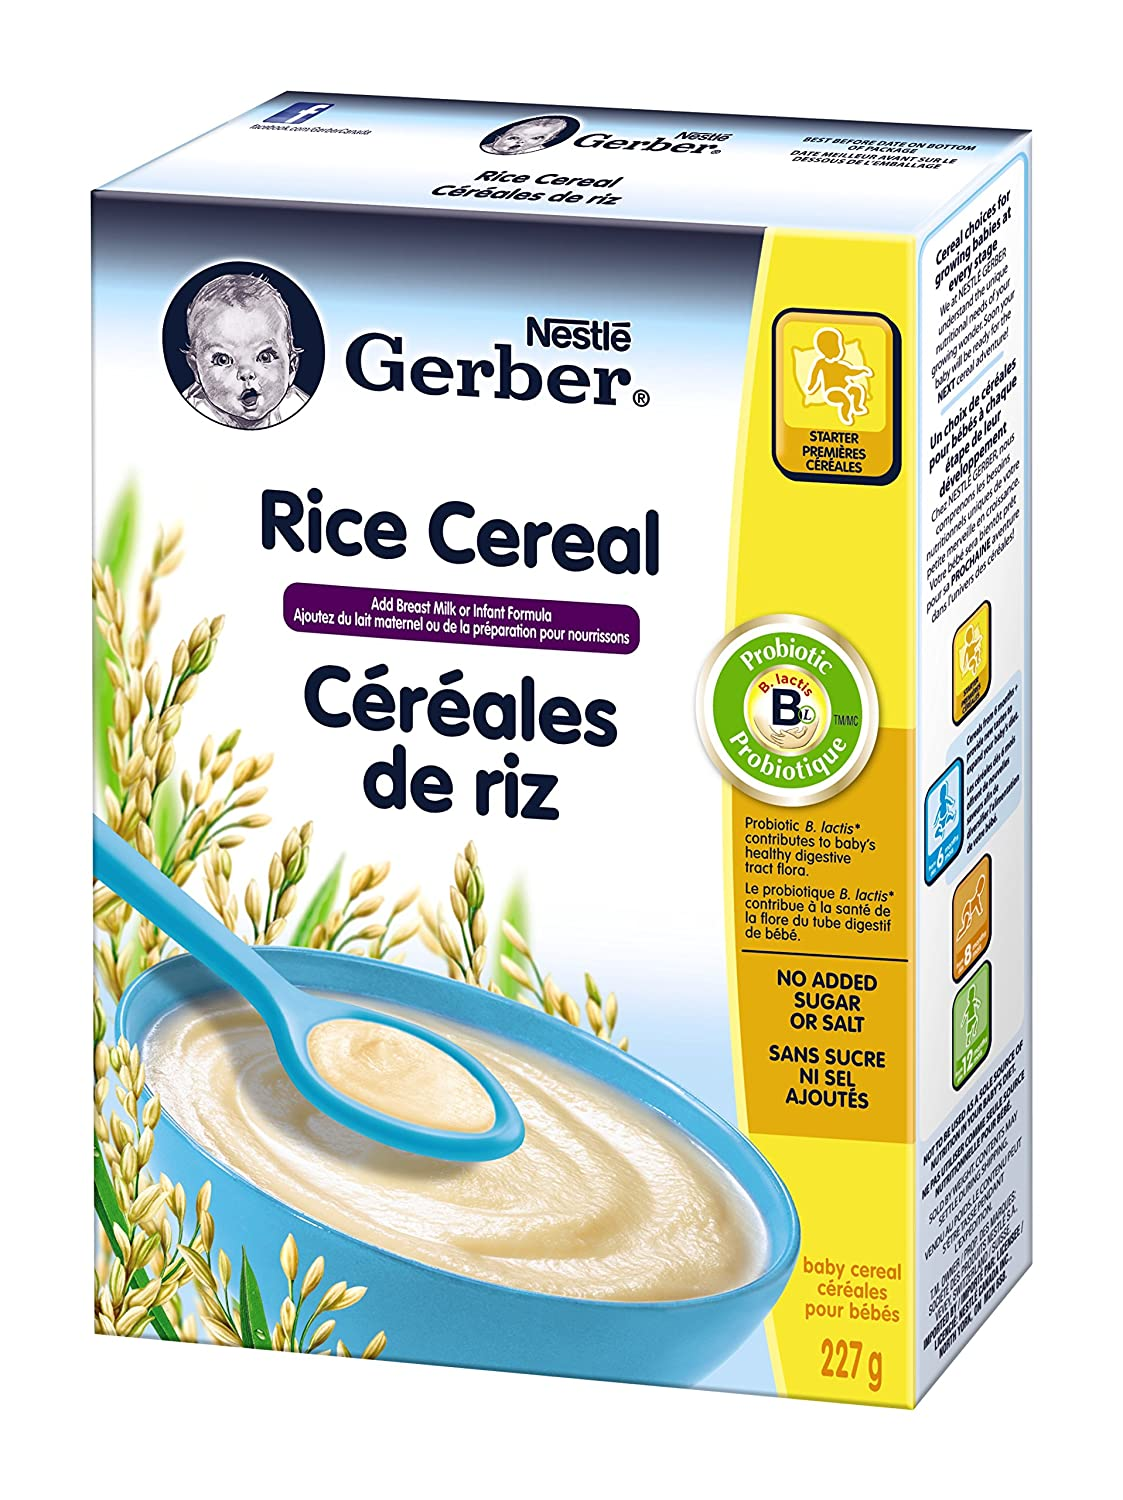 Gerber Rice Cereal Standard, Stage 1, 227g box (6 pack) Nestlé